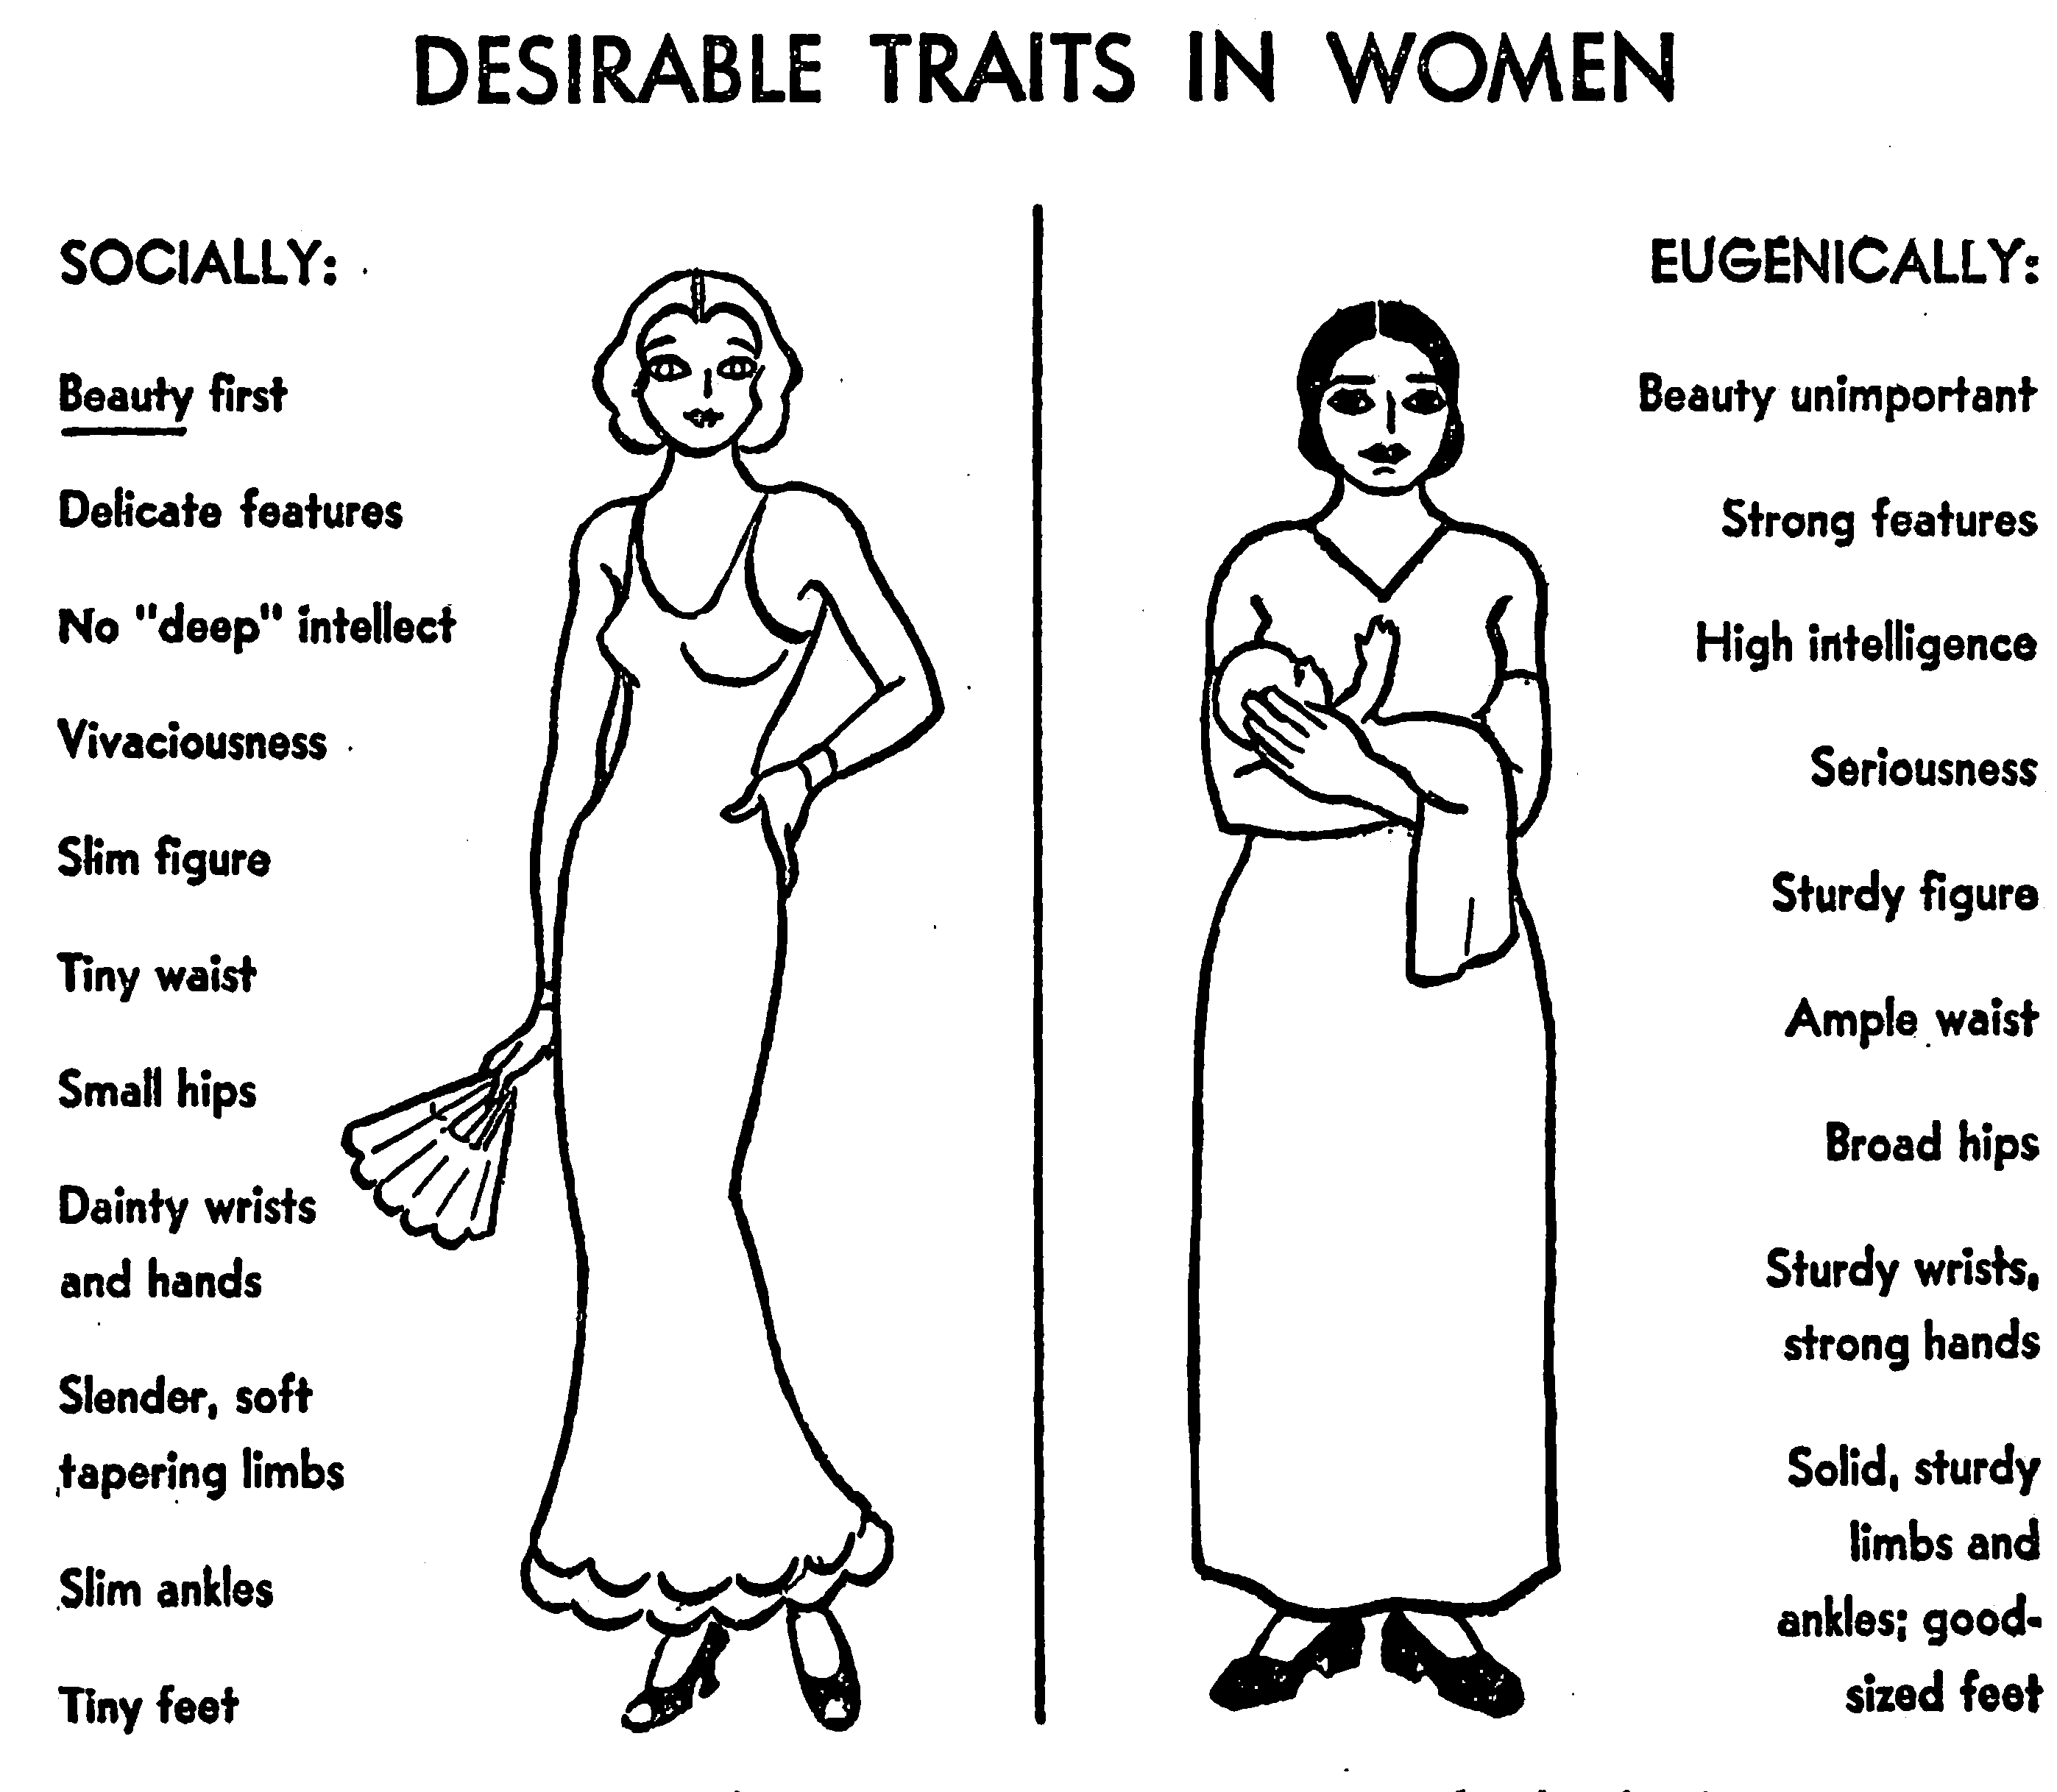 Desirable_Traits_in_Women.png